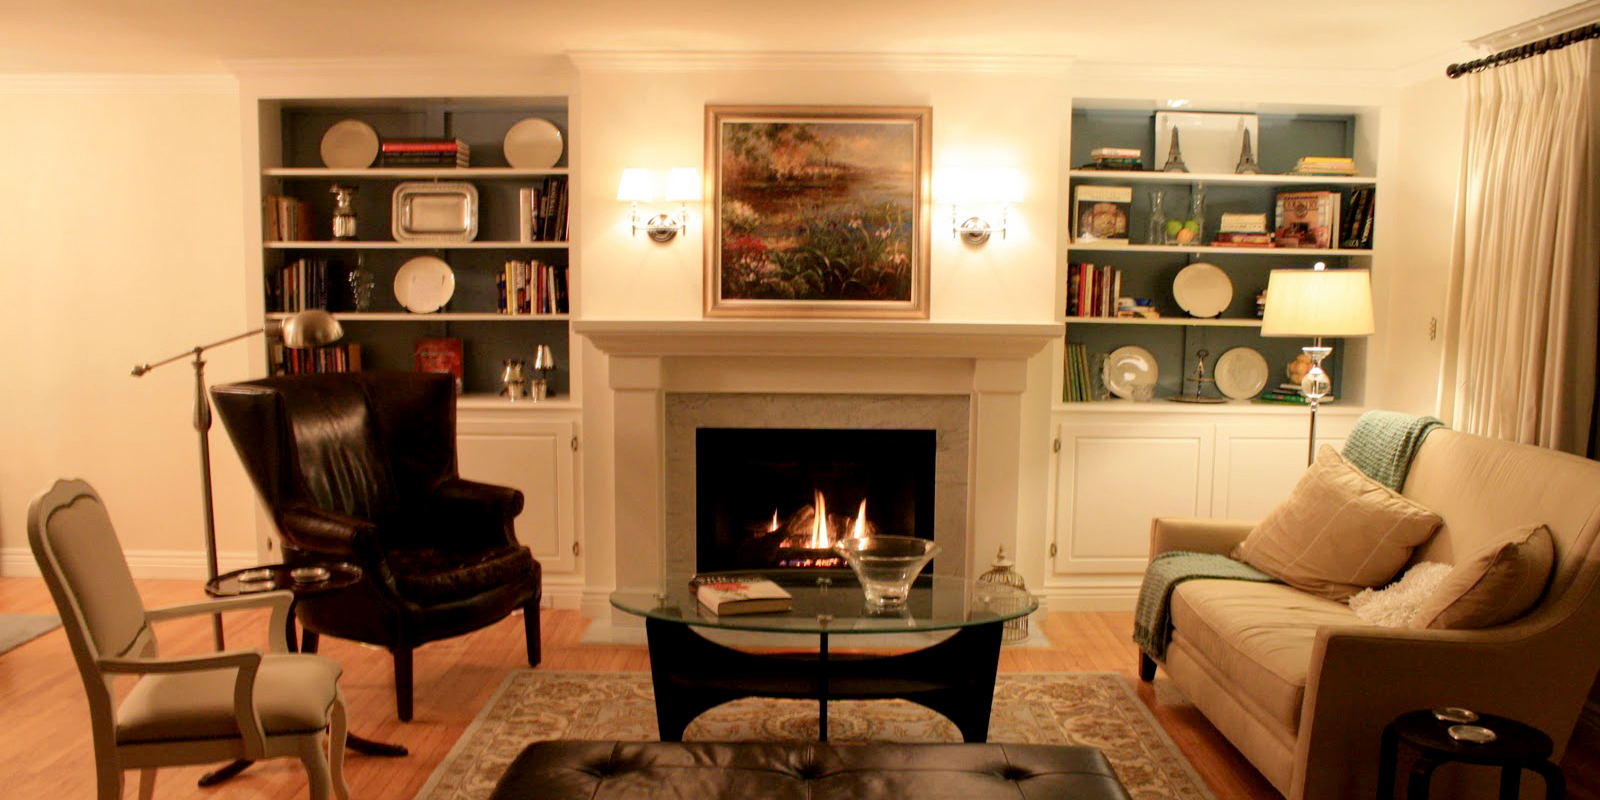 Remodelaholic | Living Room Remodel, Adding A Fireplace And Built In  Bookshelves